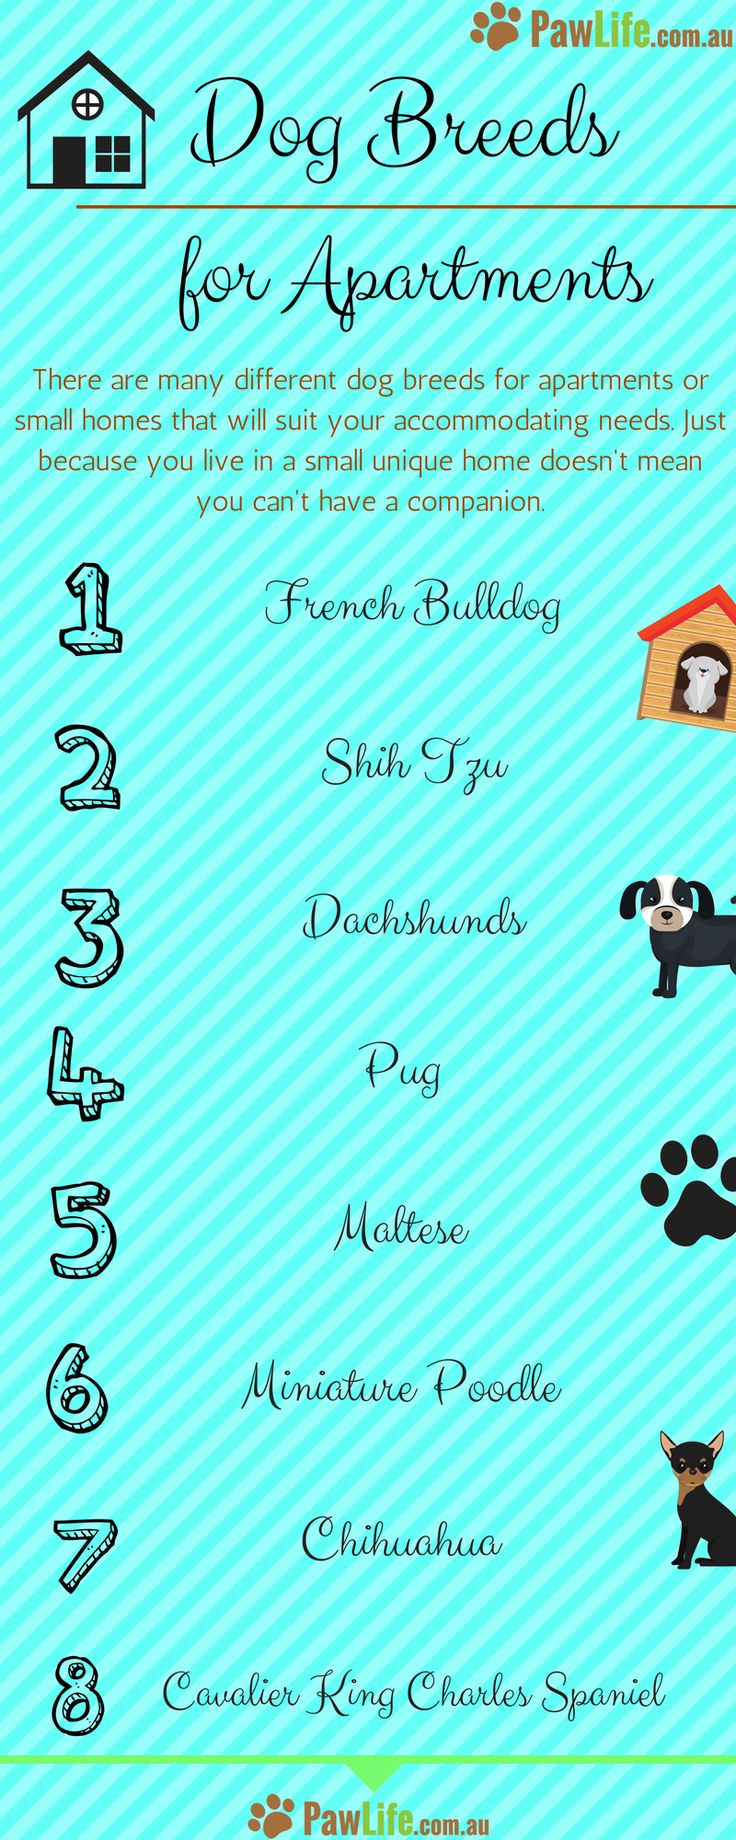 There are many different dog breeds for apartments or small homes that will suit your accommodating needs.